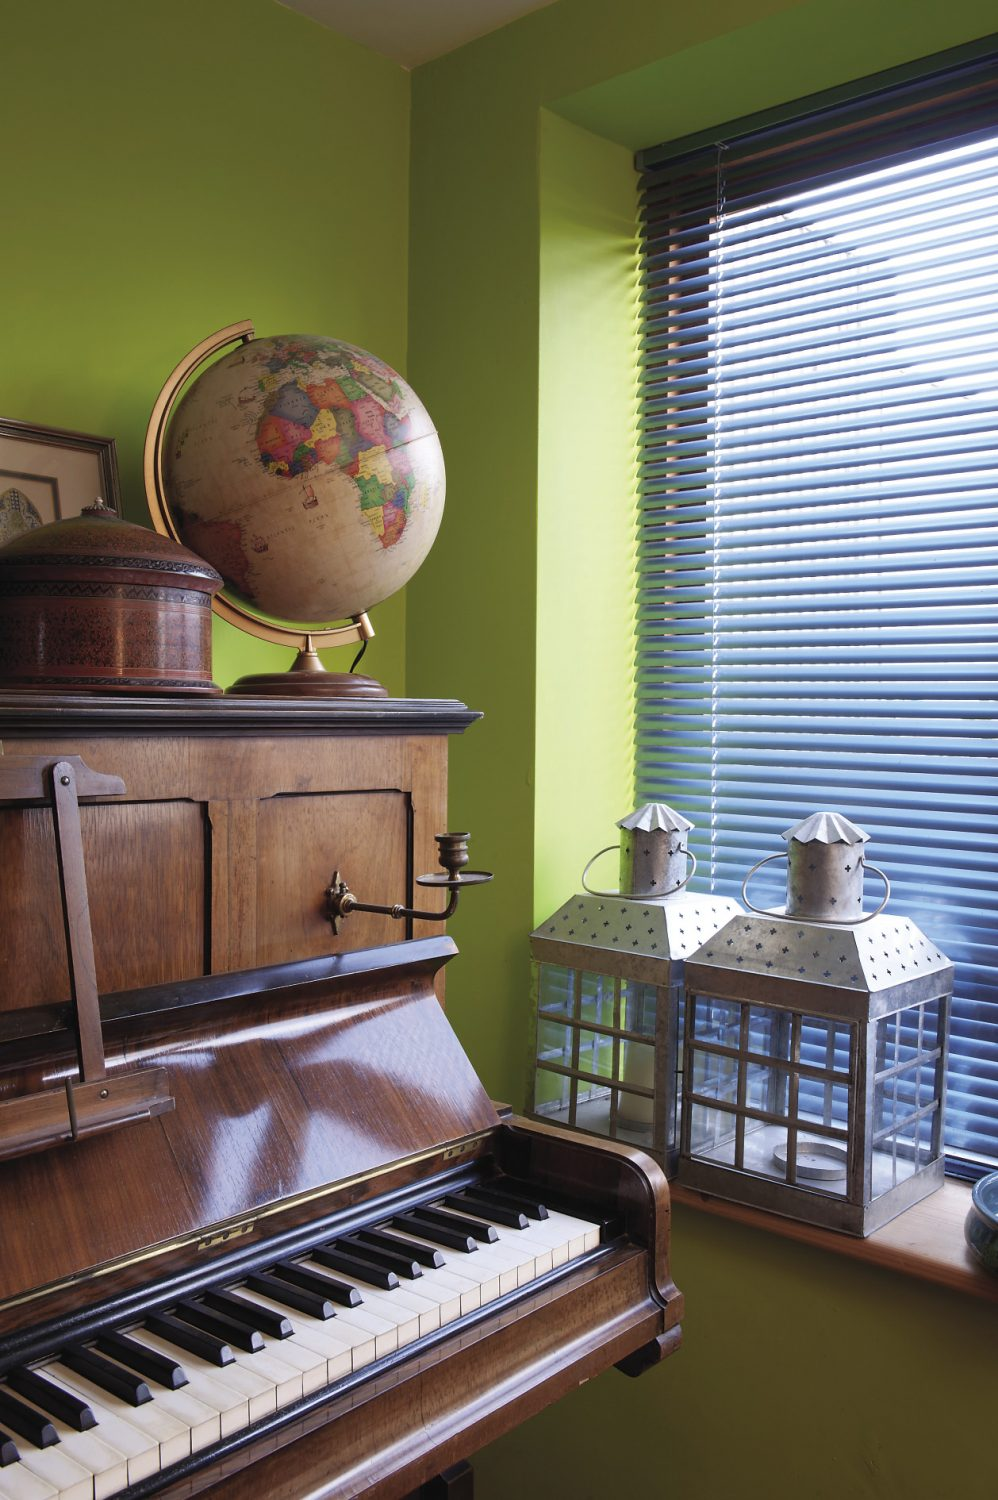 The study, home to Oliver's floor-to-ceiling CD shelves, is painted a zingy lime green